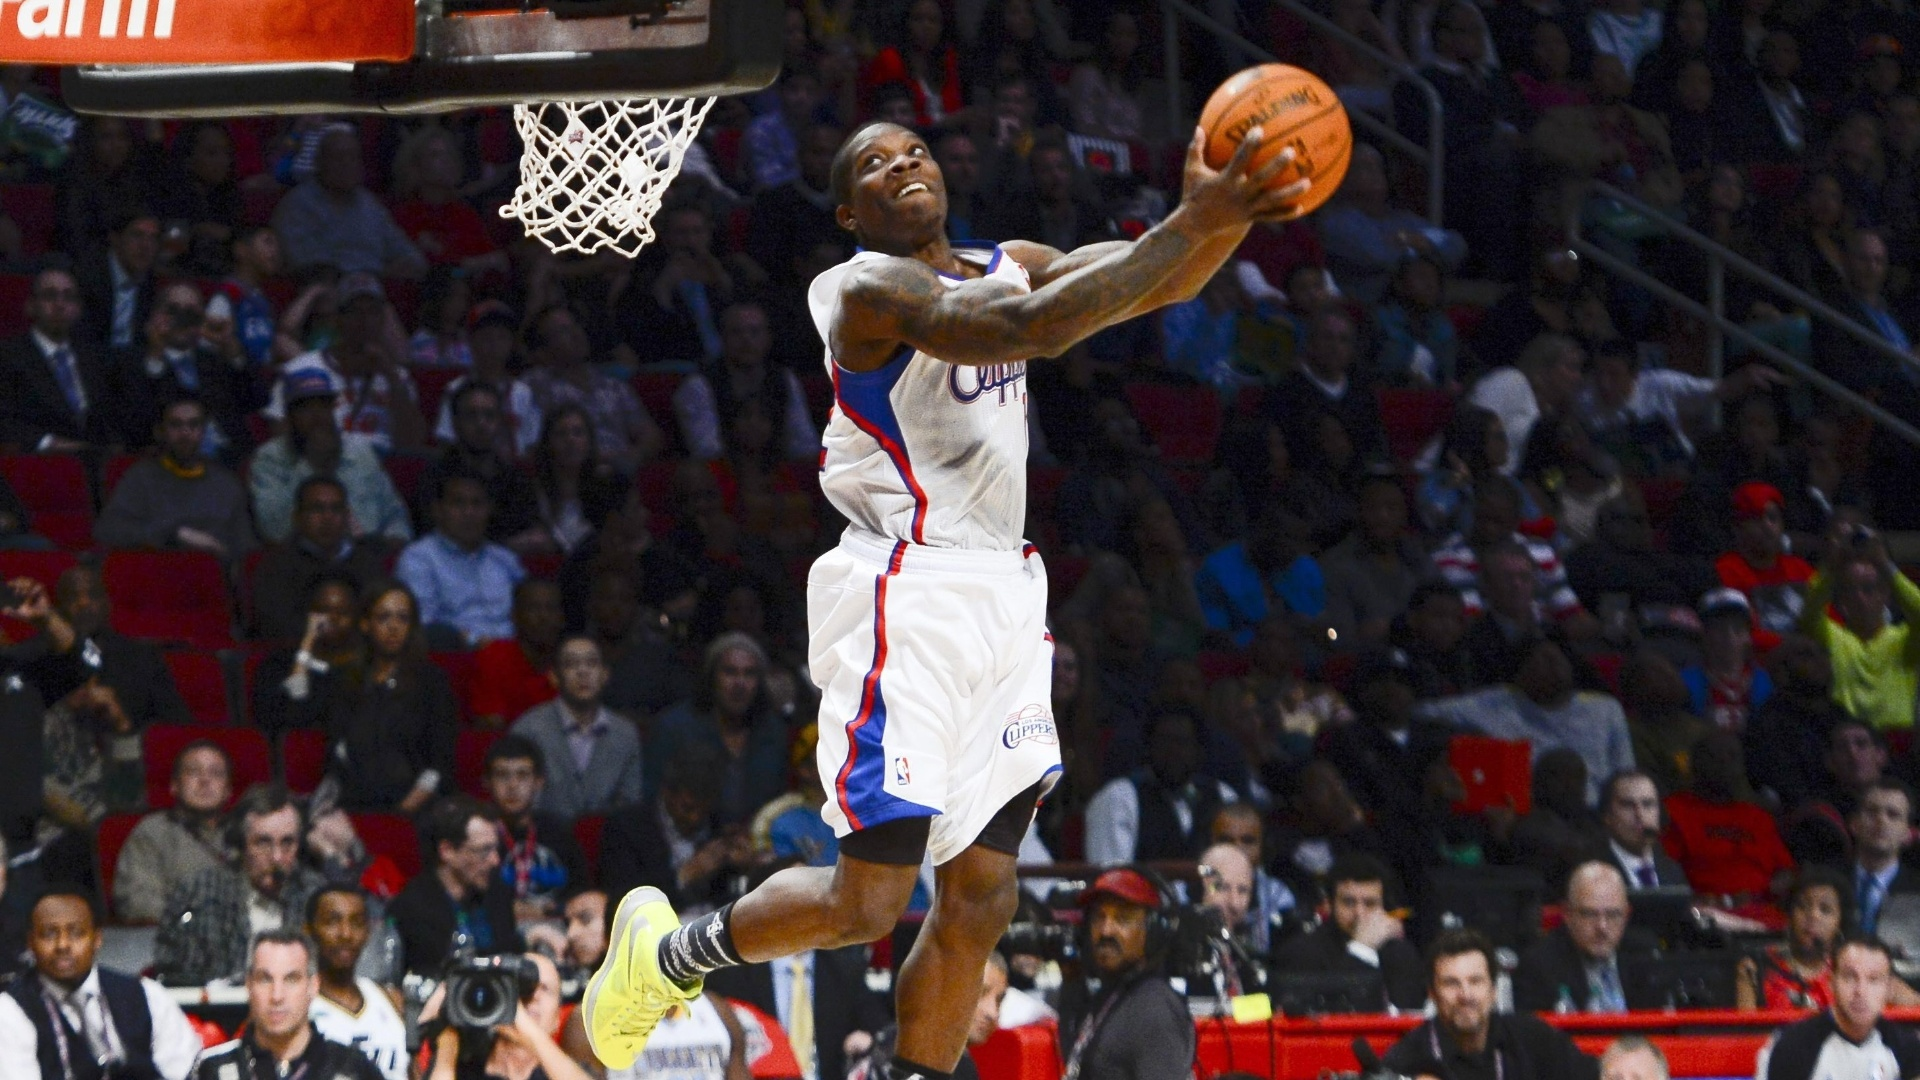 16.fev.2013 - Eric Bledsoe, do Los Angeles Clippers, executa manobra durante concurso de enterradas da NBA